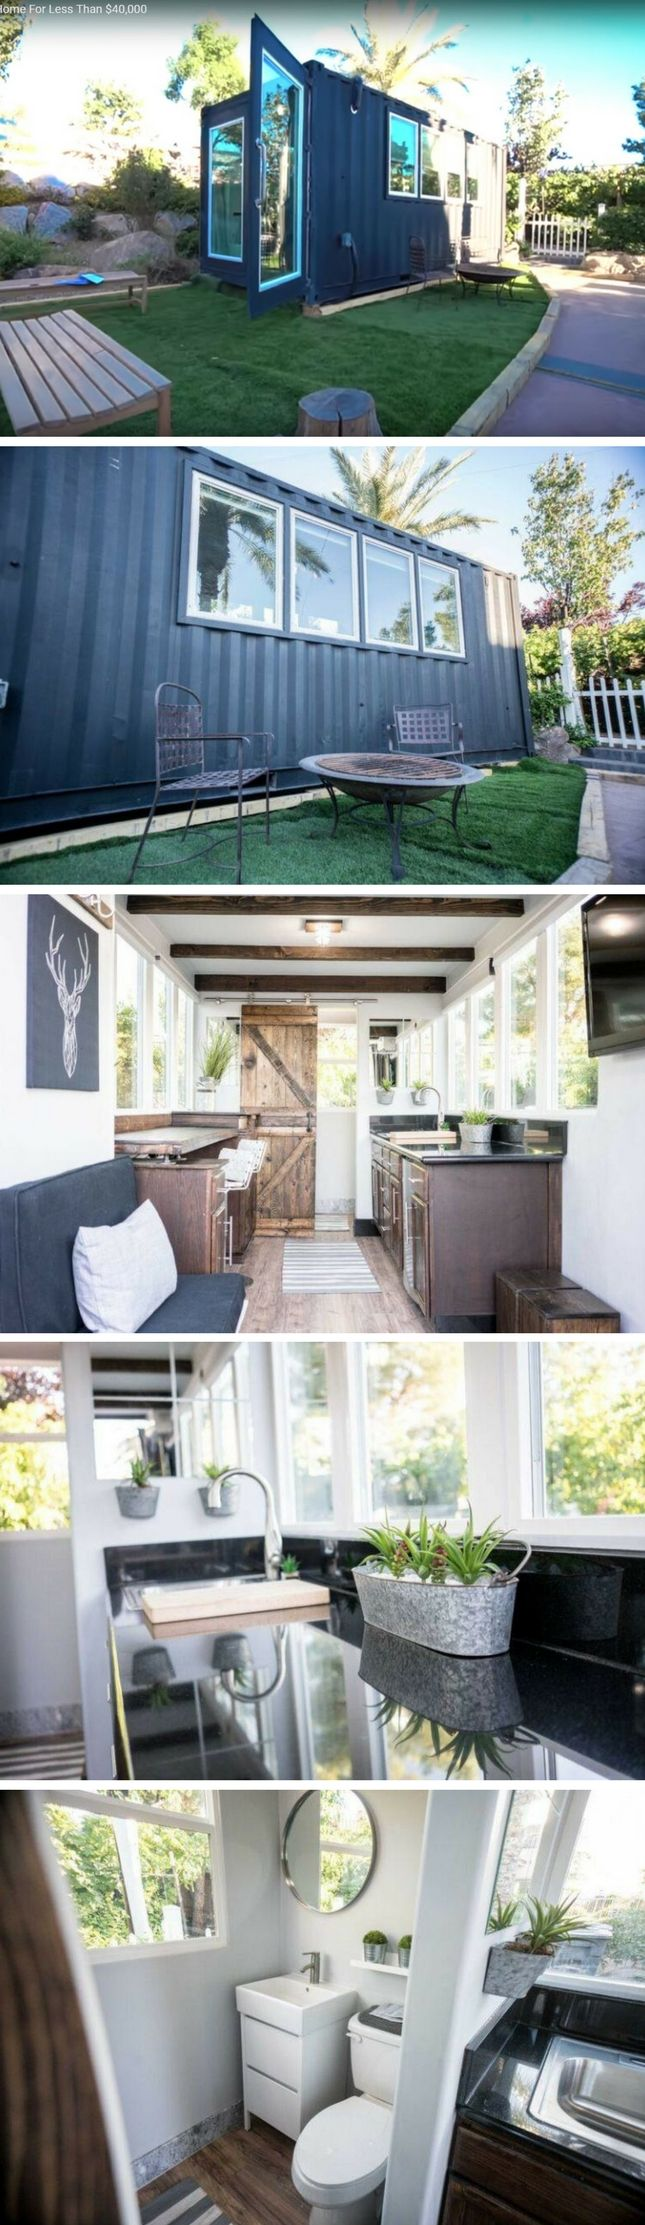 Shipping container music studio joy studio design gallery best - Find This Pin And More On Shipping Container Home Plans